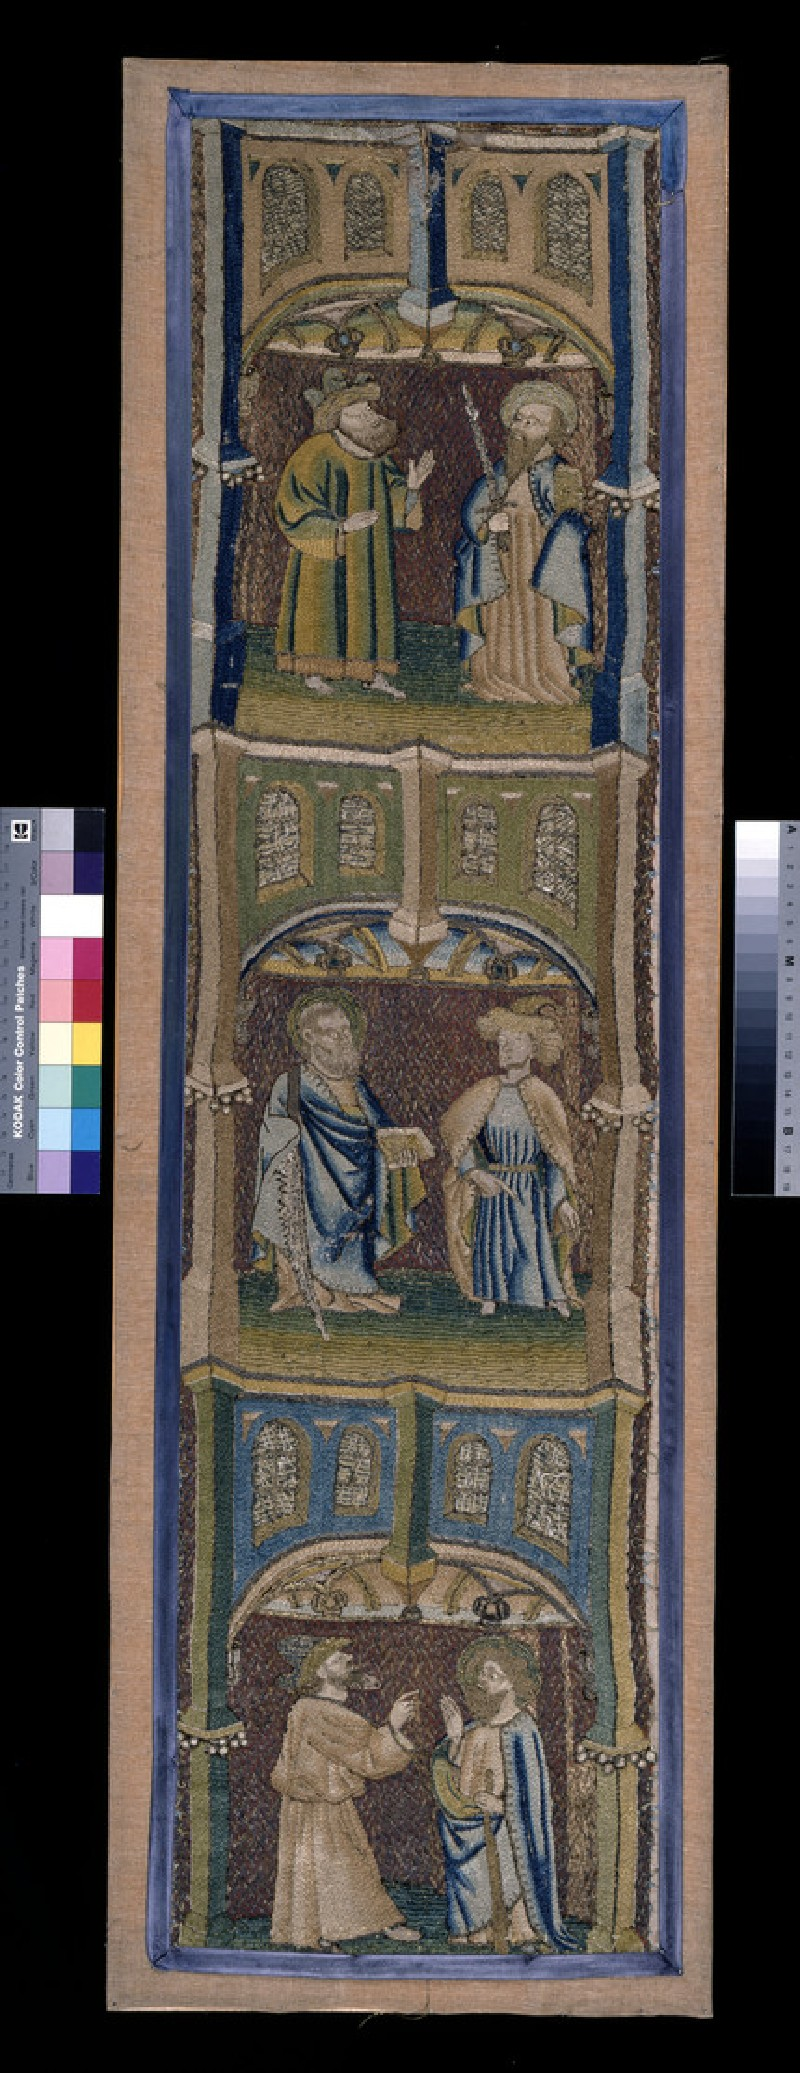 Ecclesiastical vestment embroidery, Opus Anglicanum (WA1947.191.304)